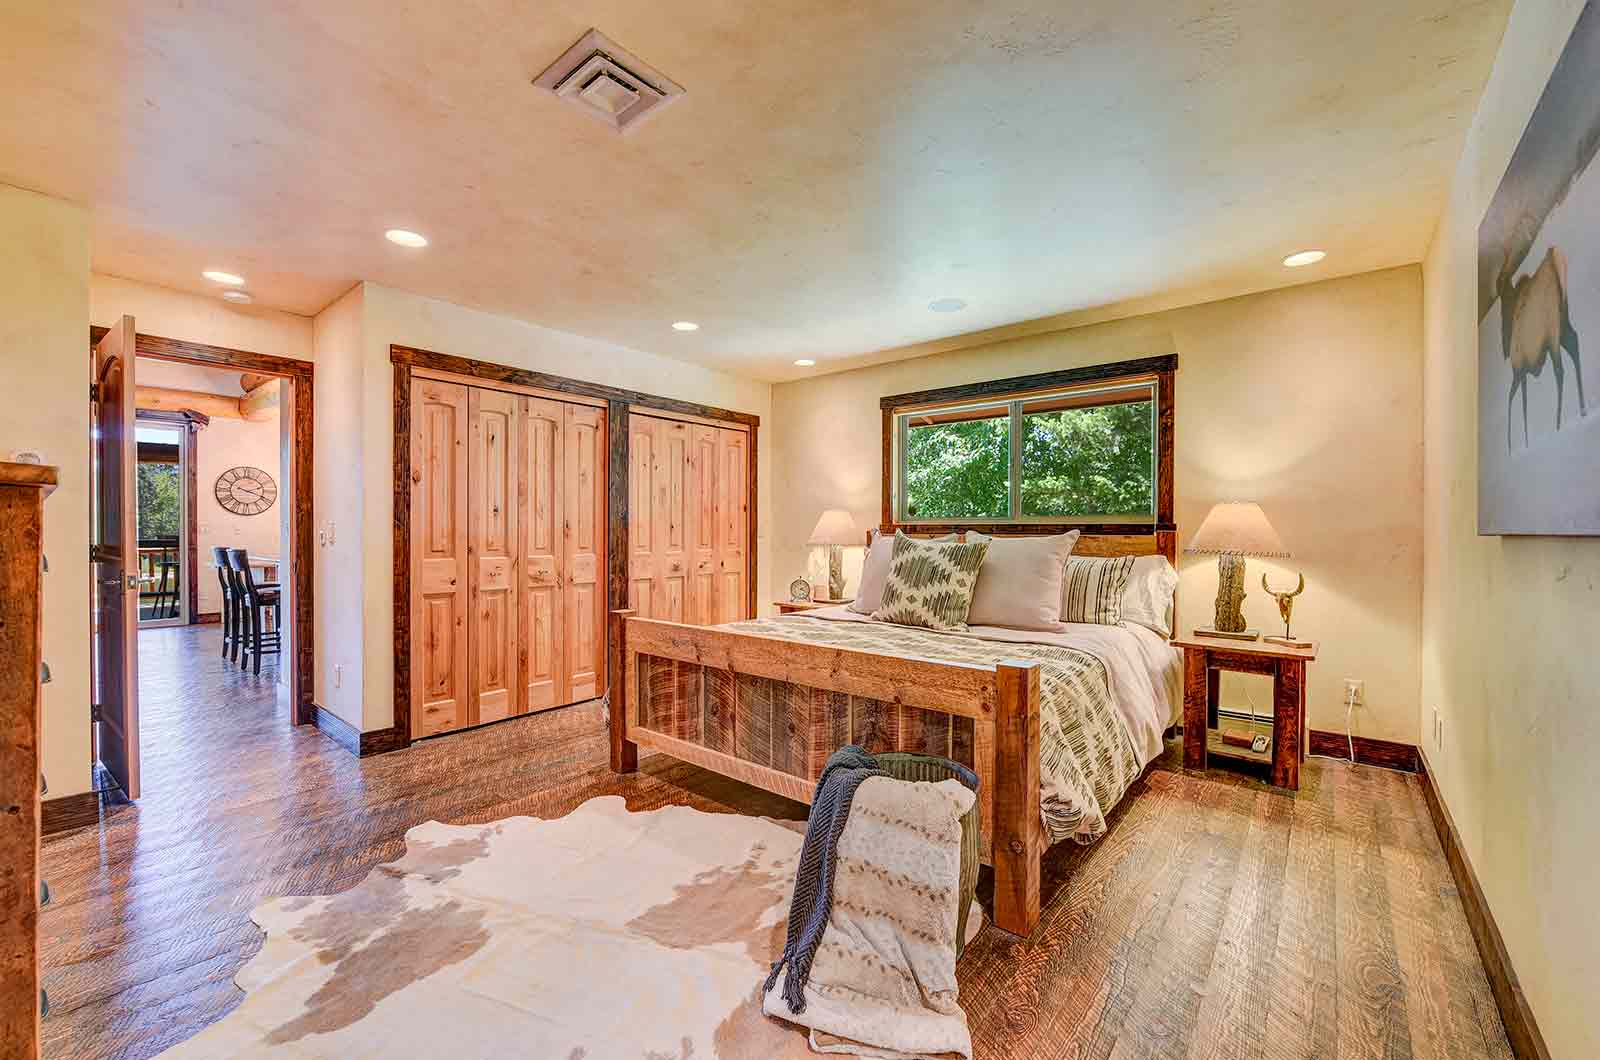 Feat-Professional-Luxury-Real-Estate-Photography-Los-Angeles